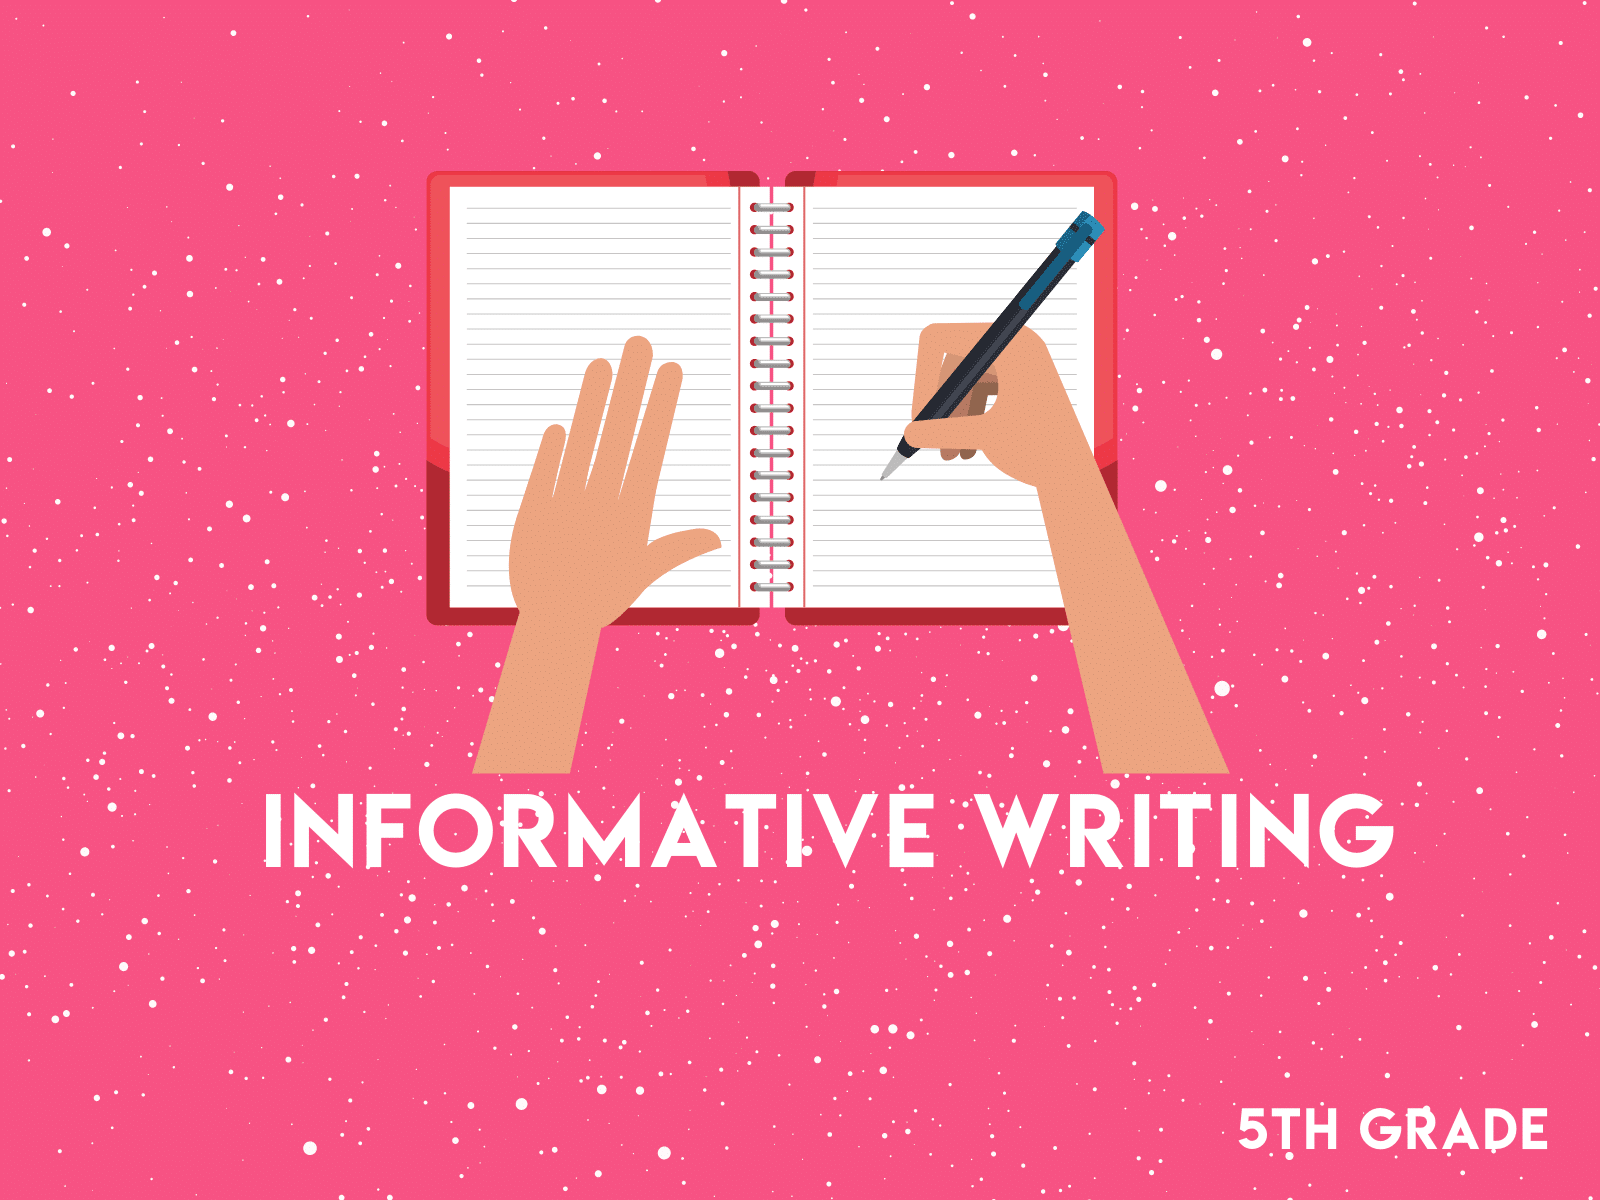 Practice informative writing with this free learning resource for fifth grade.